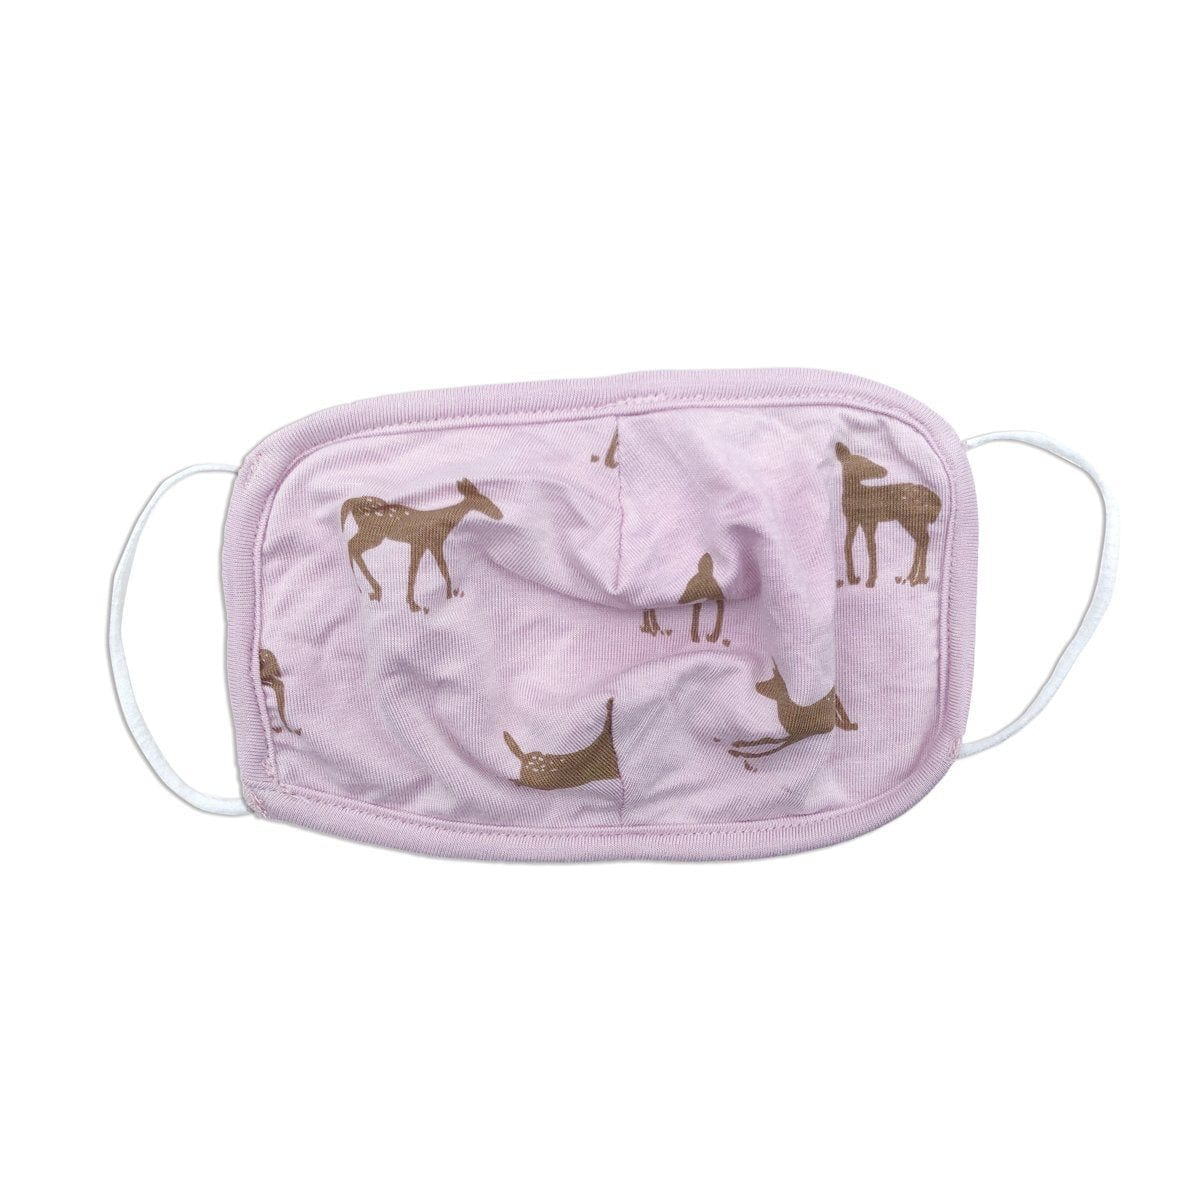 Silkberry Baby Bamboo Kids Face Mask - Autumn Deer